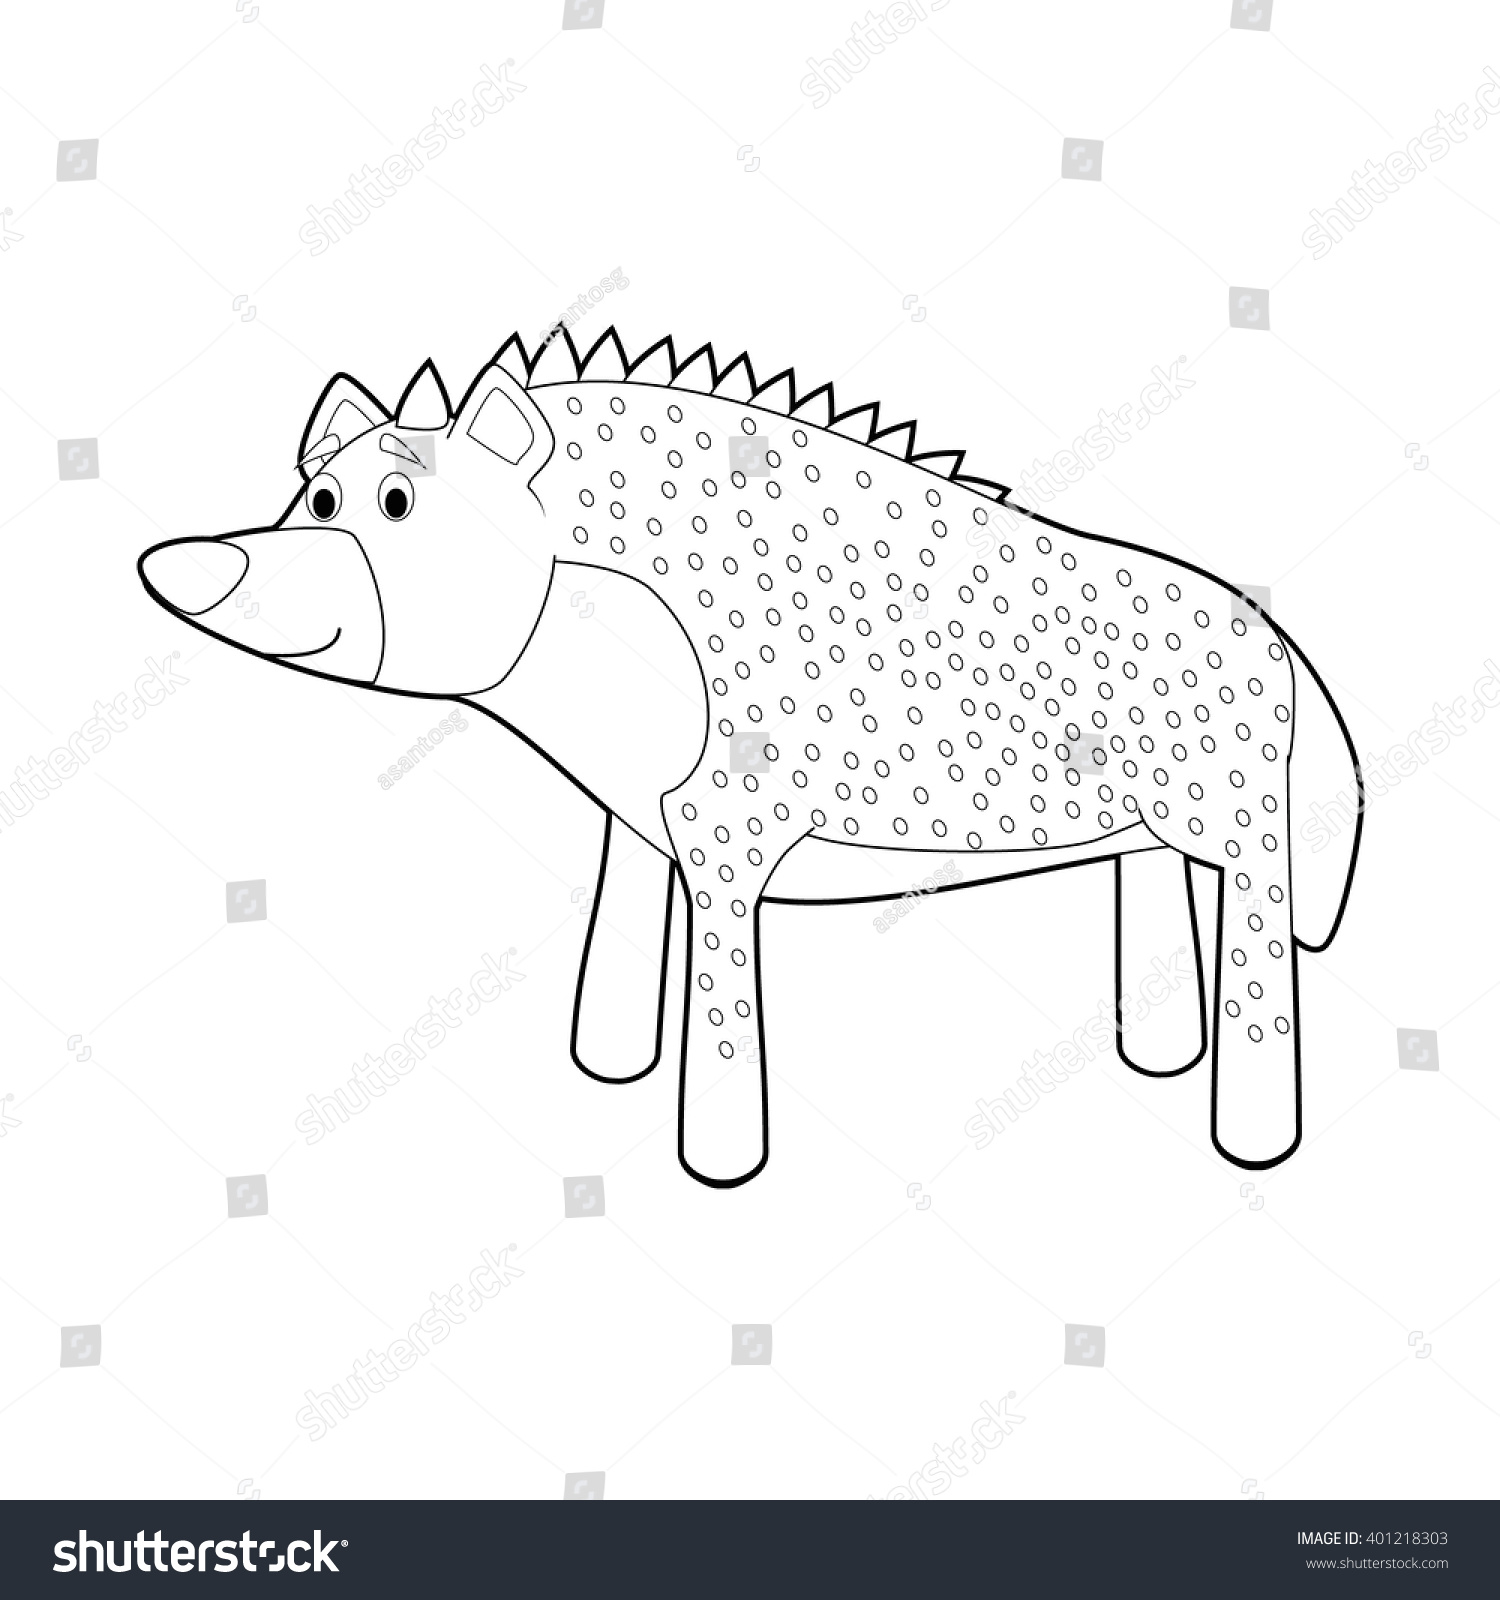 easy coloring drawings animals little kids stock vector 401218303